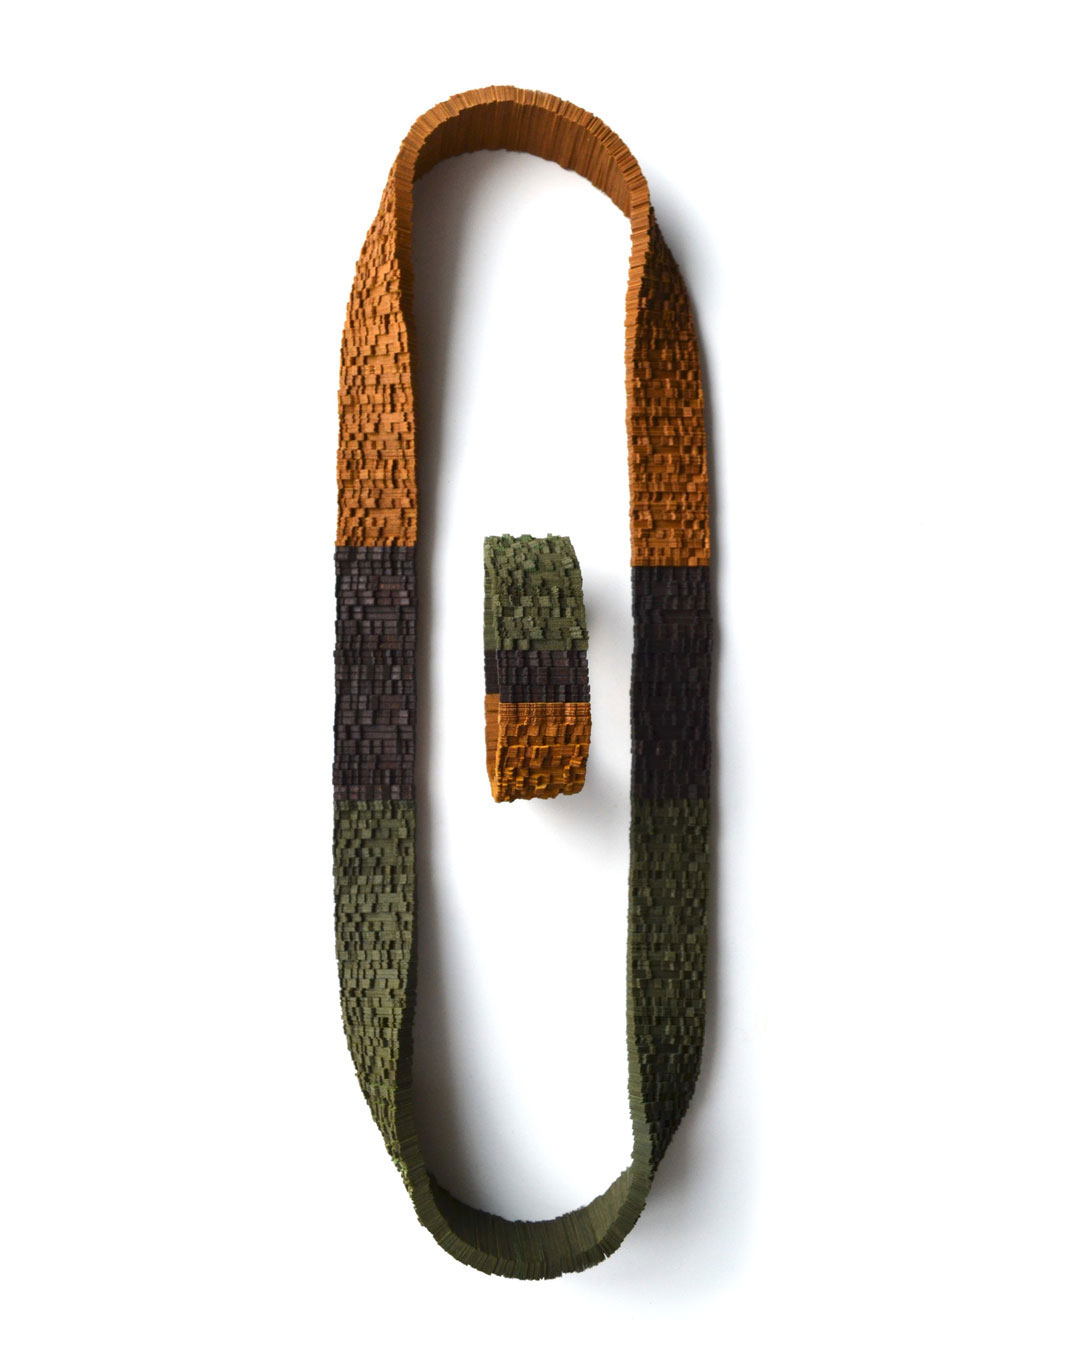 Genevieve Howard, Autumn in Paris, 2018, necklace with bracelet; Japanese linen paper, walnut, elastic cord, 310 x 200 x 25 mm / 70 x 25 mm, €2800